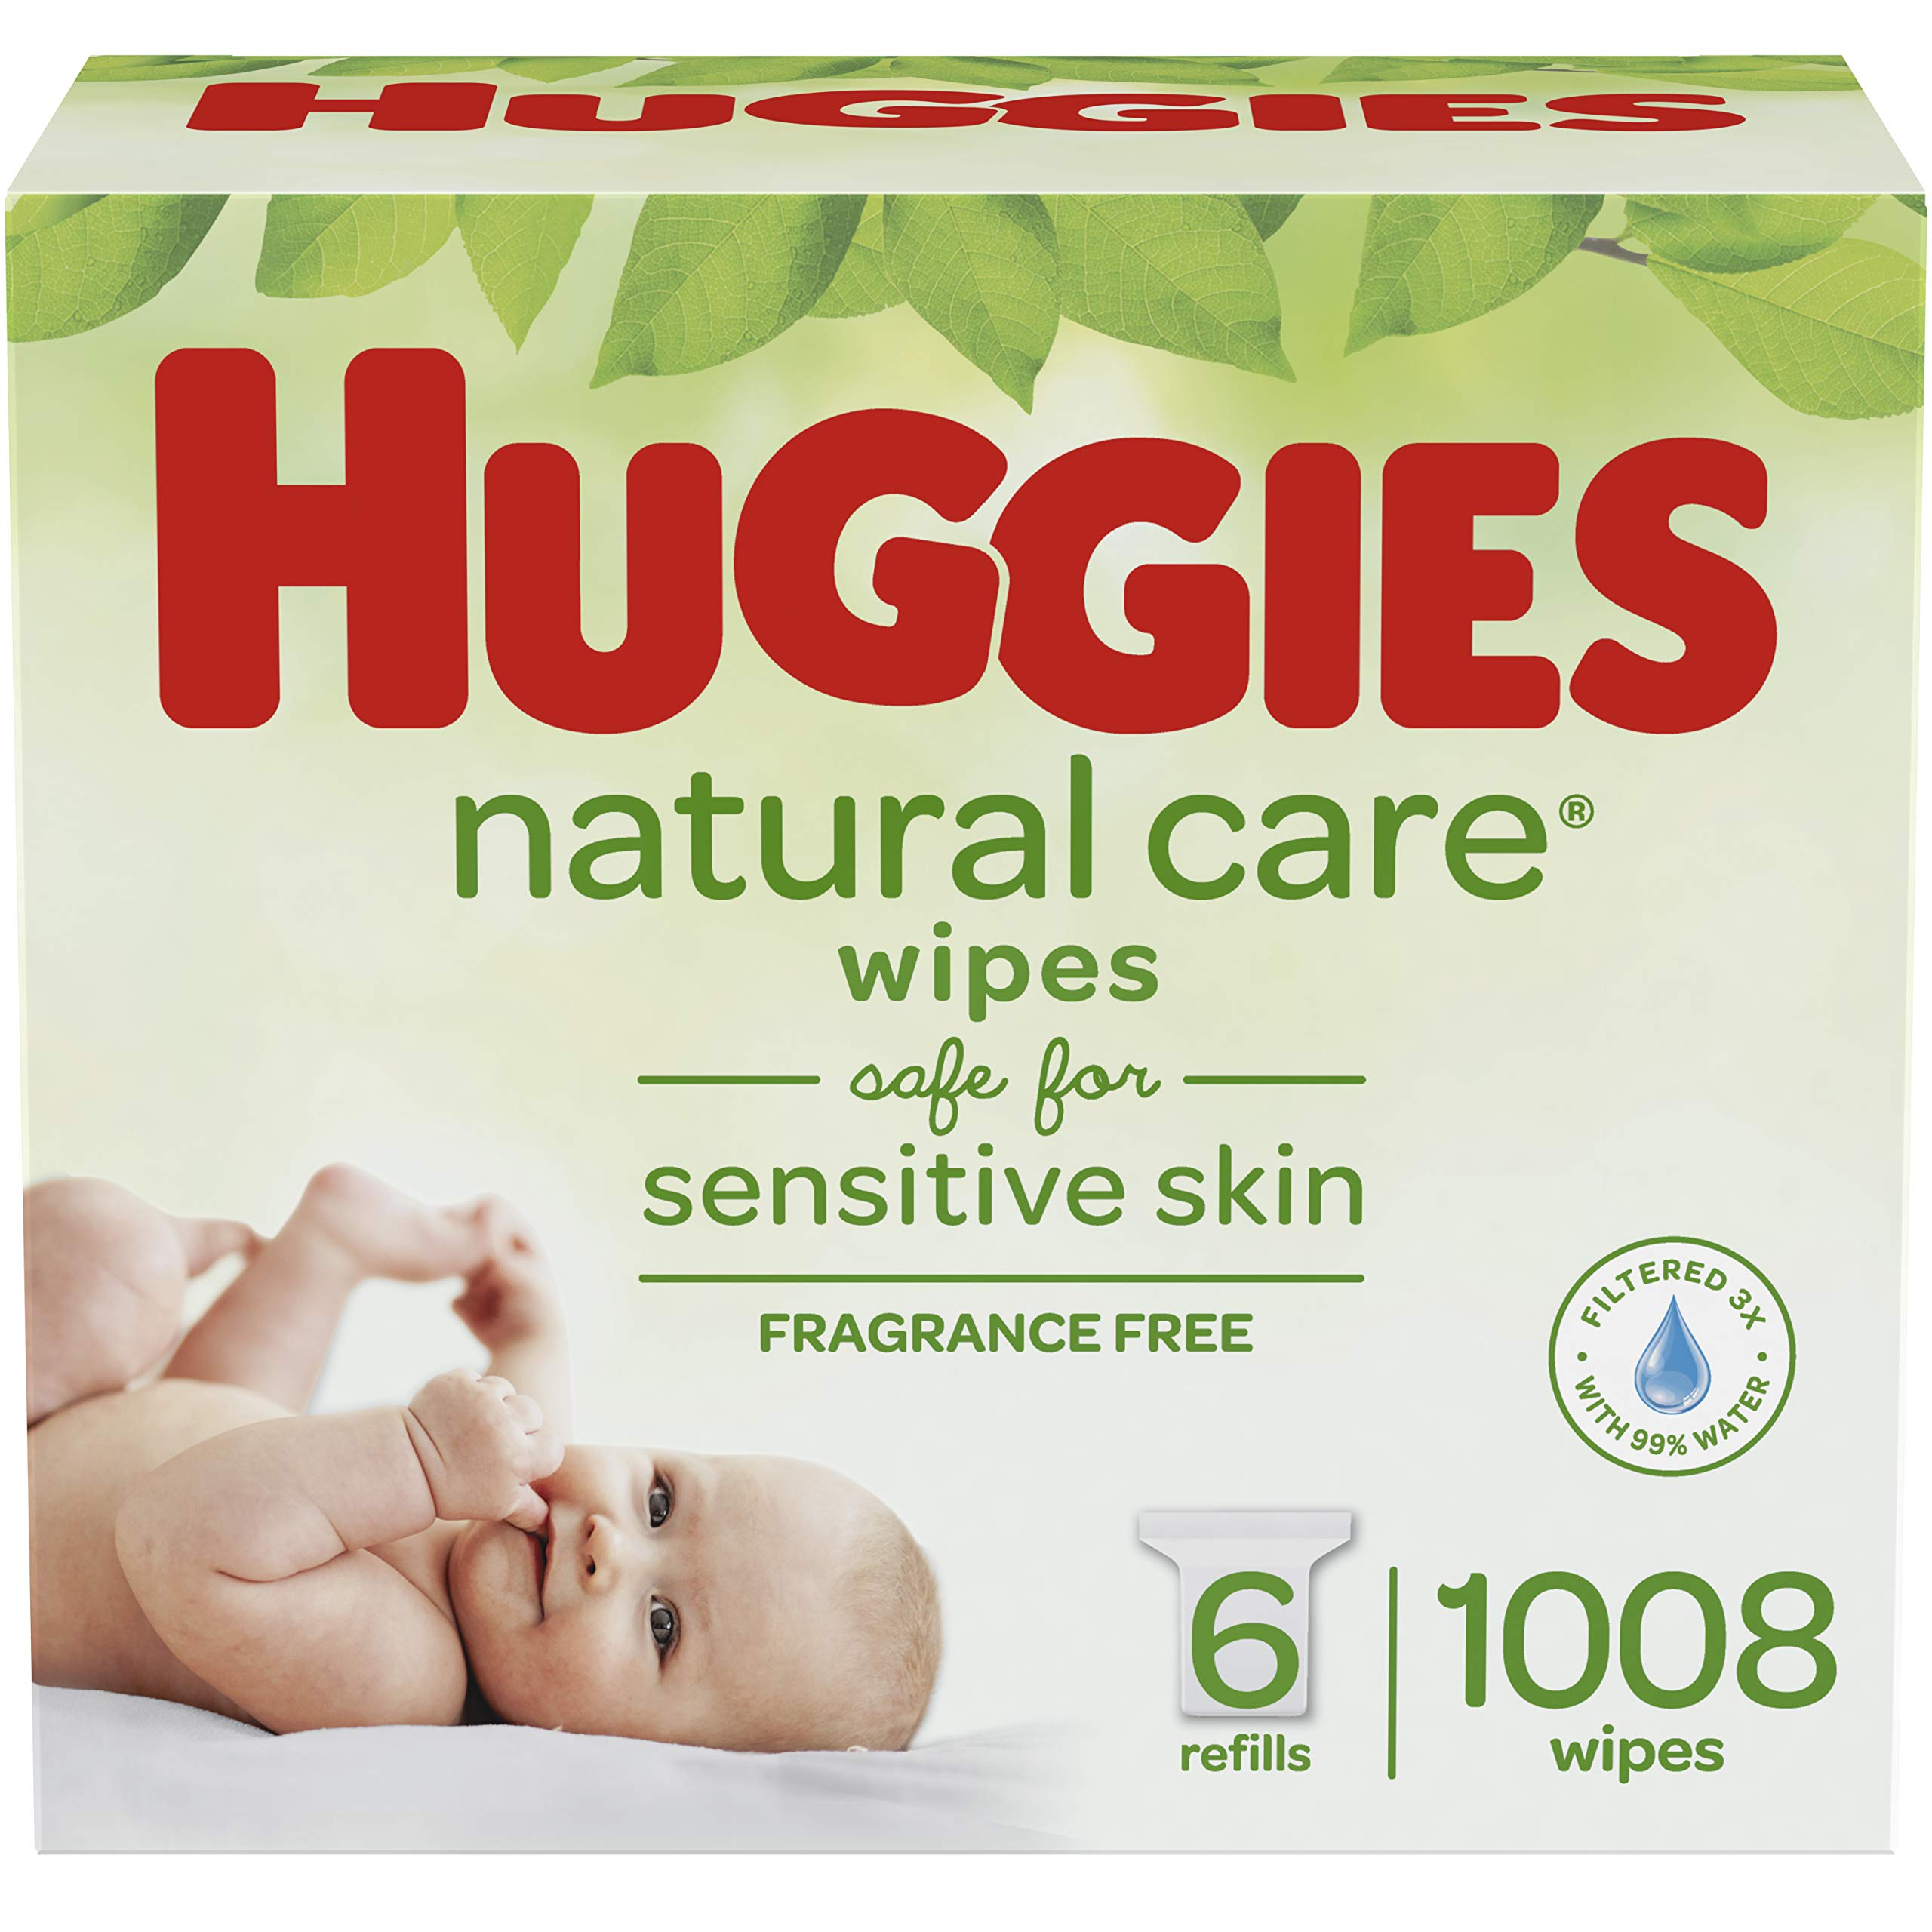 Huggies Natural Care Unscented Baby Wipes, Sensitive, 6 Refill Packs (1008 Wipes) product image